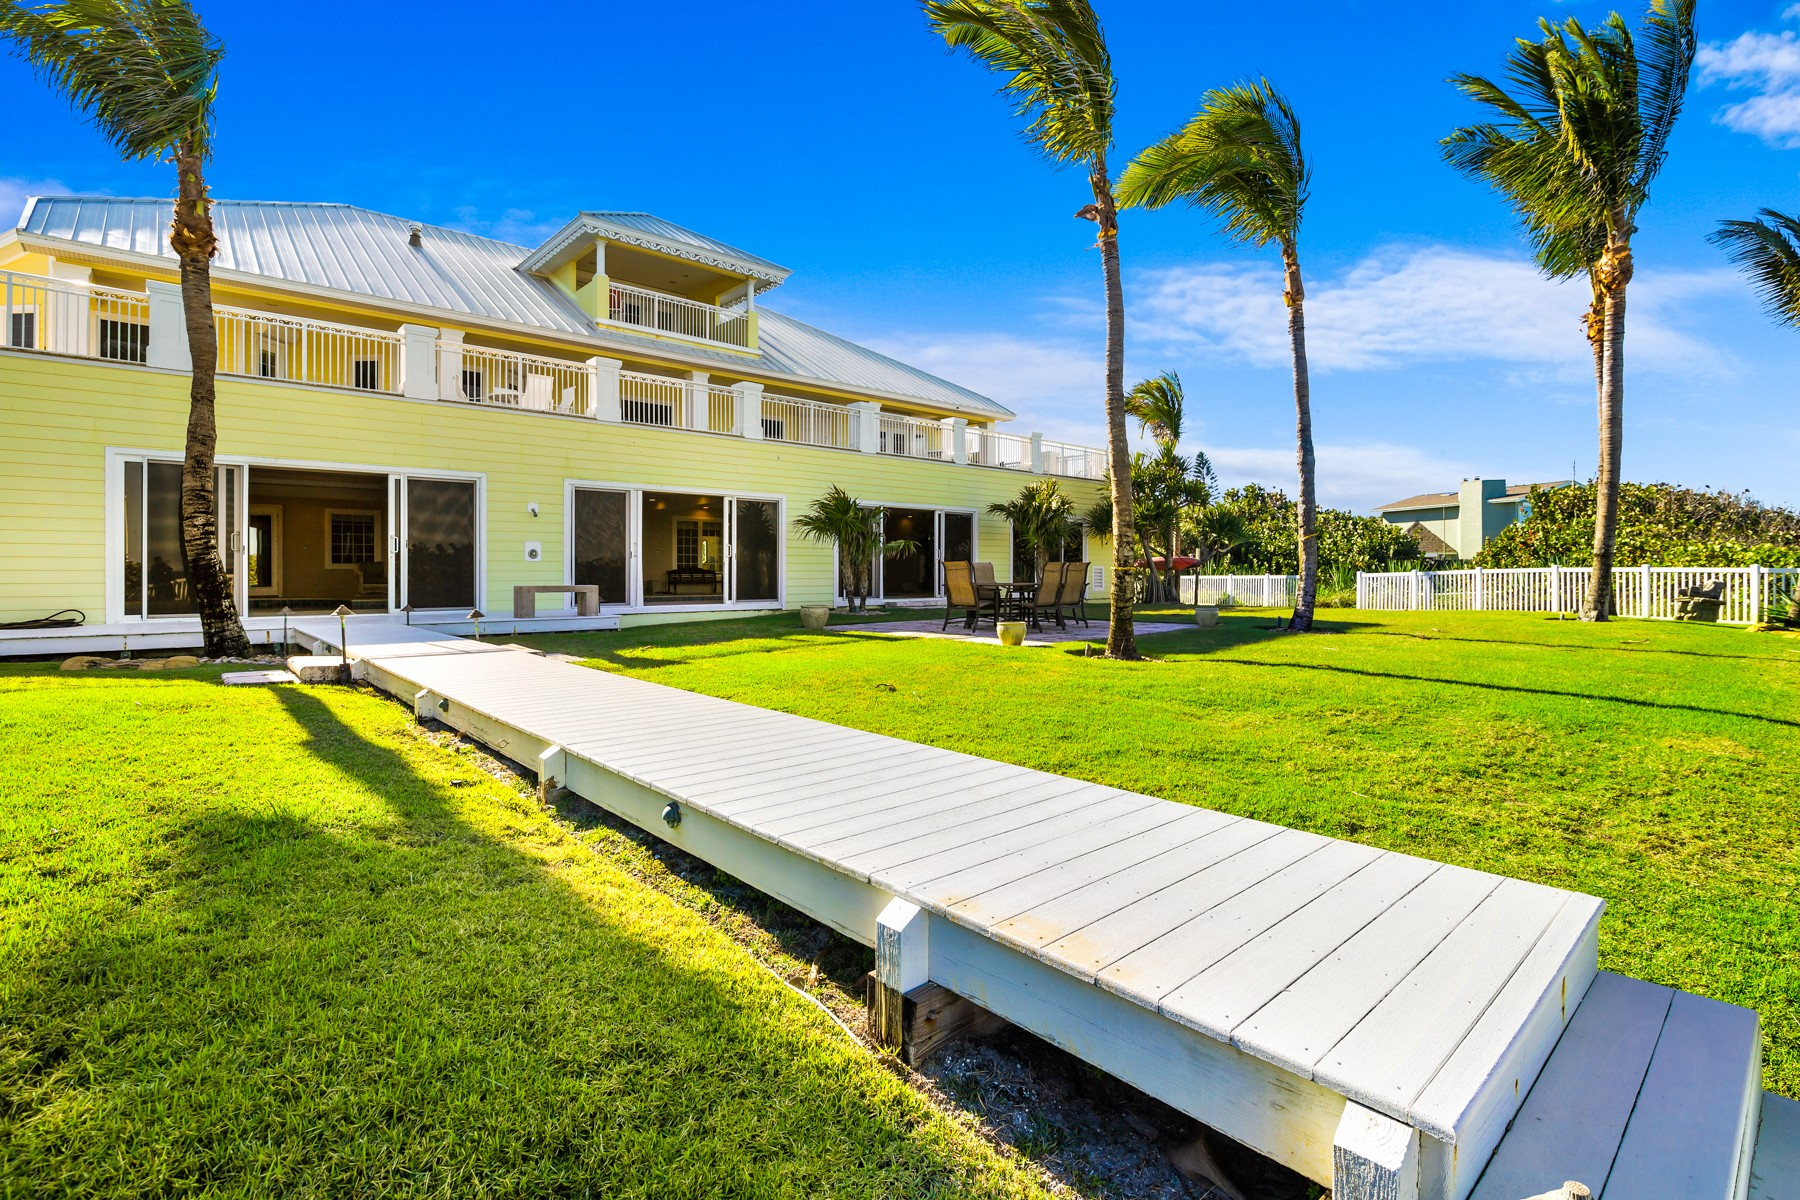 Additional photo for property listing at Gorgeous Tropically Landscaped Home with Endless Ocean Vistas 5045 S Highway A1A Melbourne Beach, Florida 32951 Förenta staterna